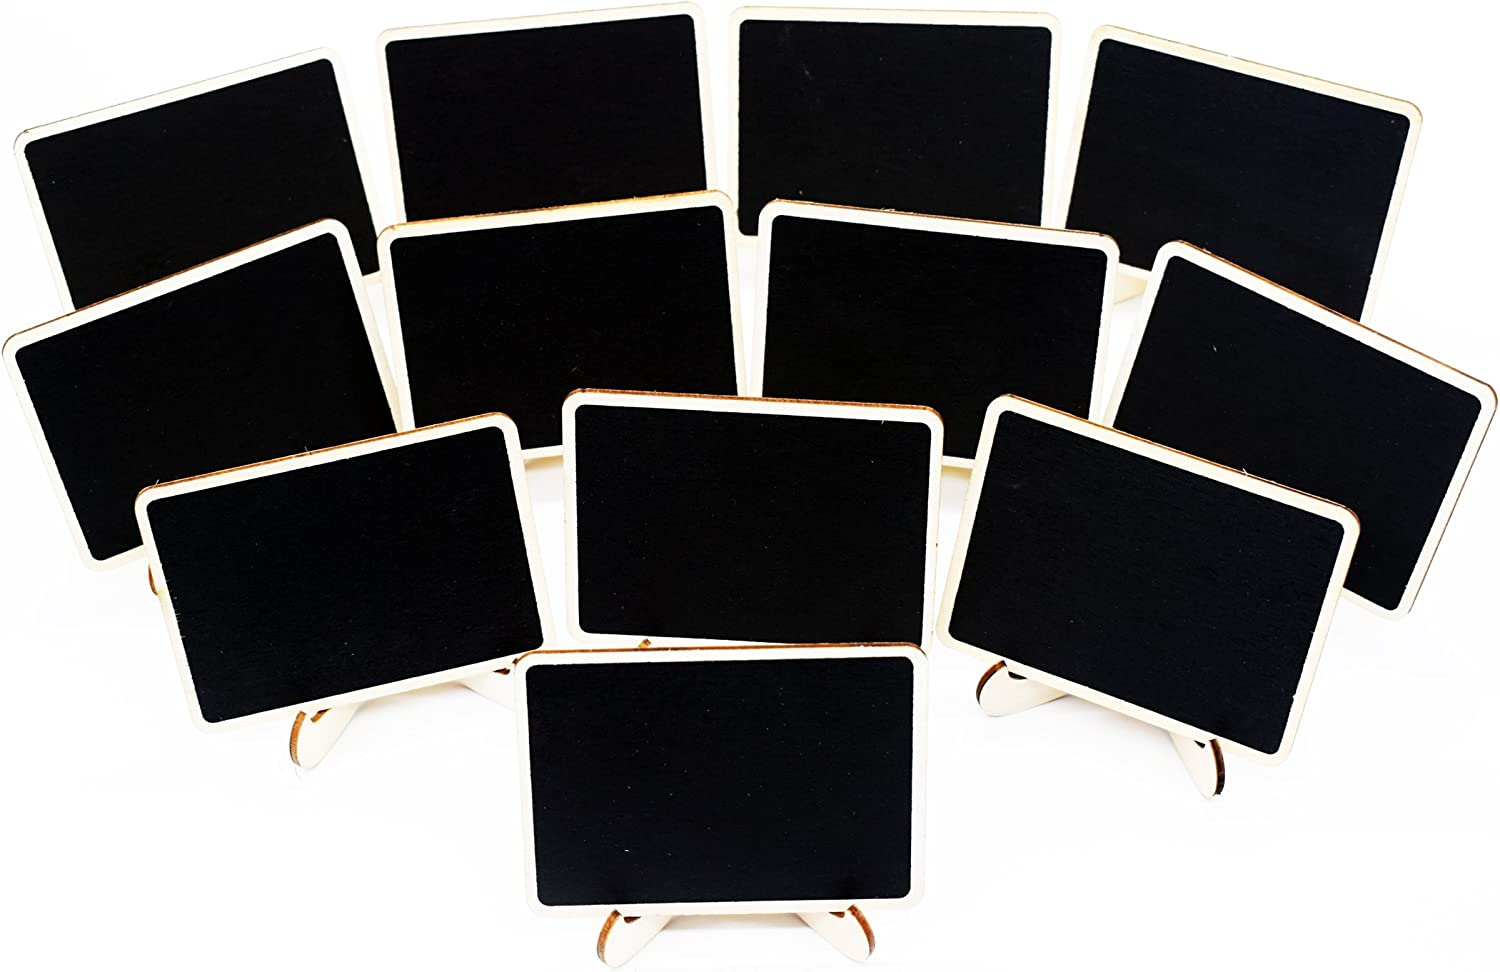 12 PACK Mini Blackboard Place Card With Support Easel for Message Board Signs Wedding Table Holders Table Number Holders Name Place Card Holder Food Signs With Wet Towel Wip Off (Black-S-M)